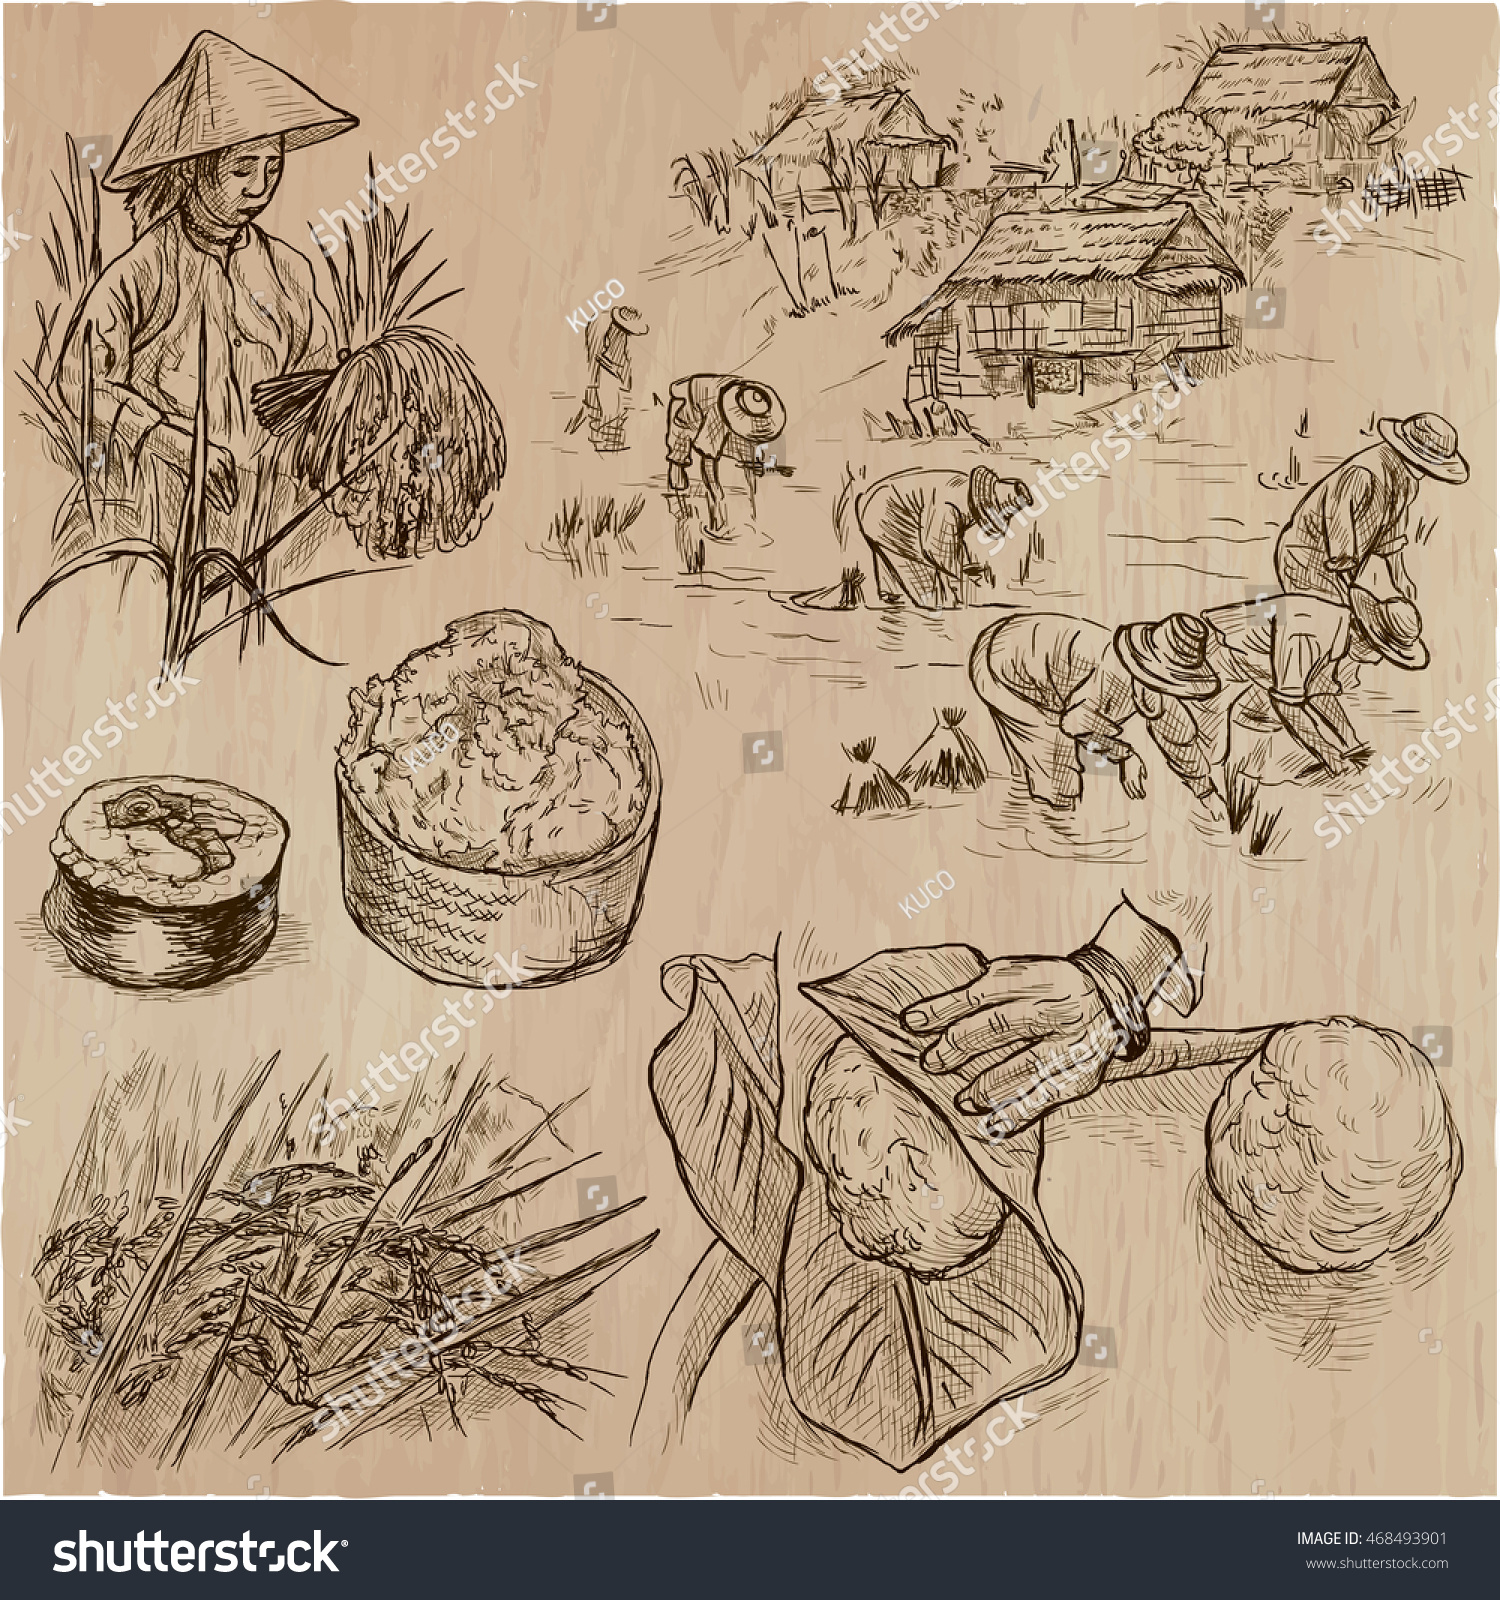 hight resolution of agriculture life of a farmer rice crop collection of hand drawn vector illustrations